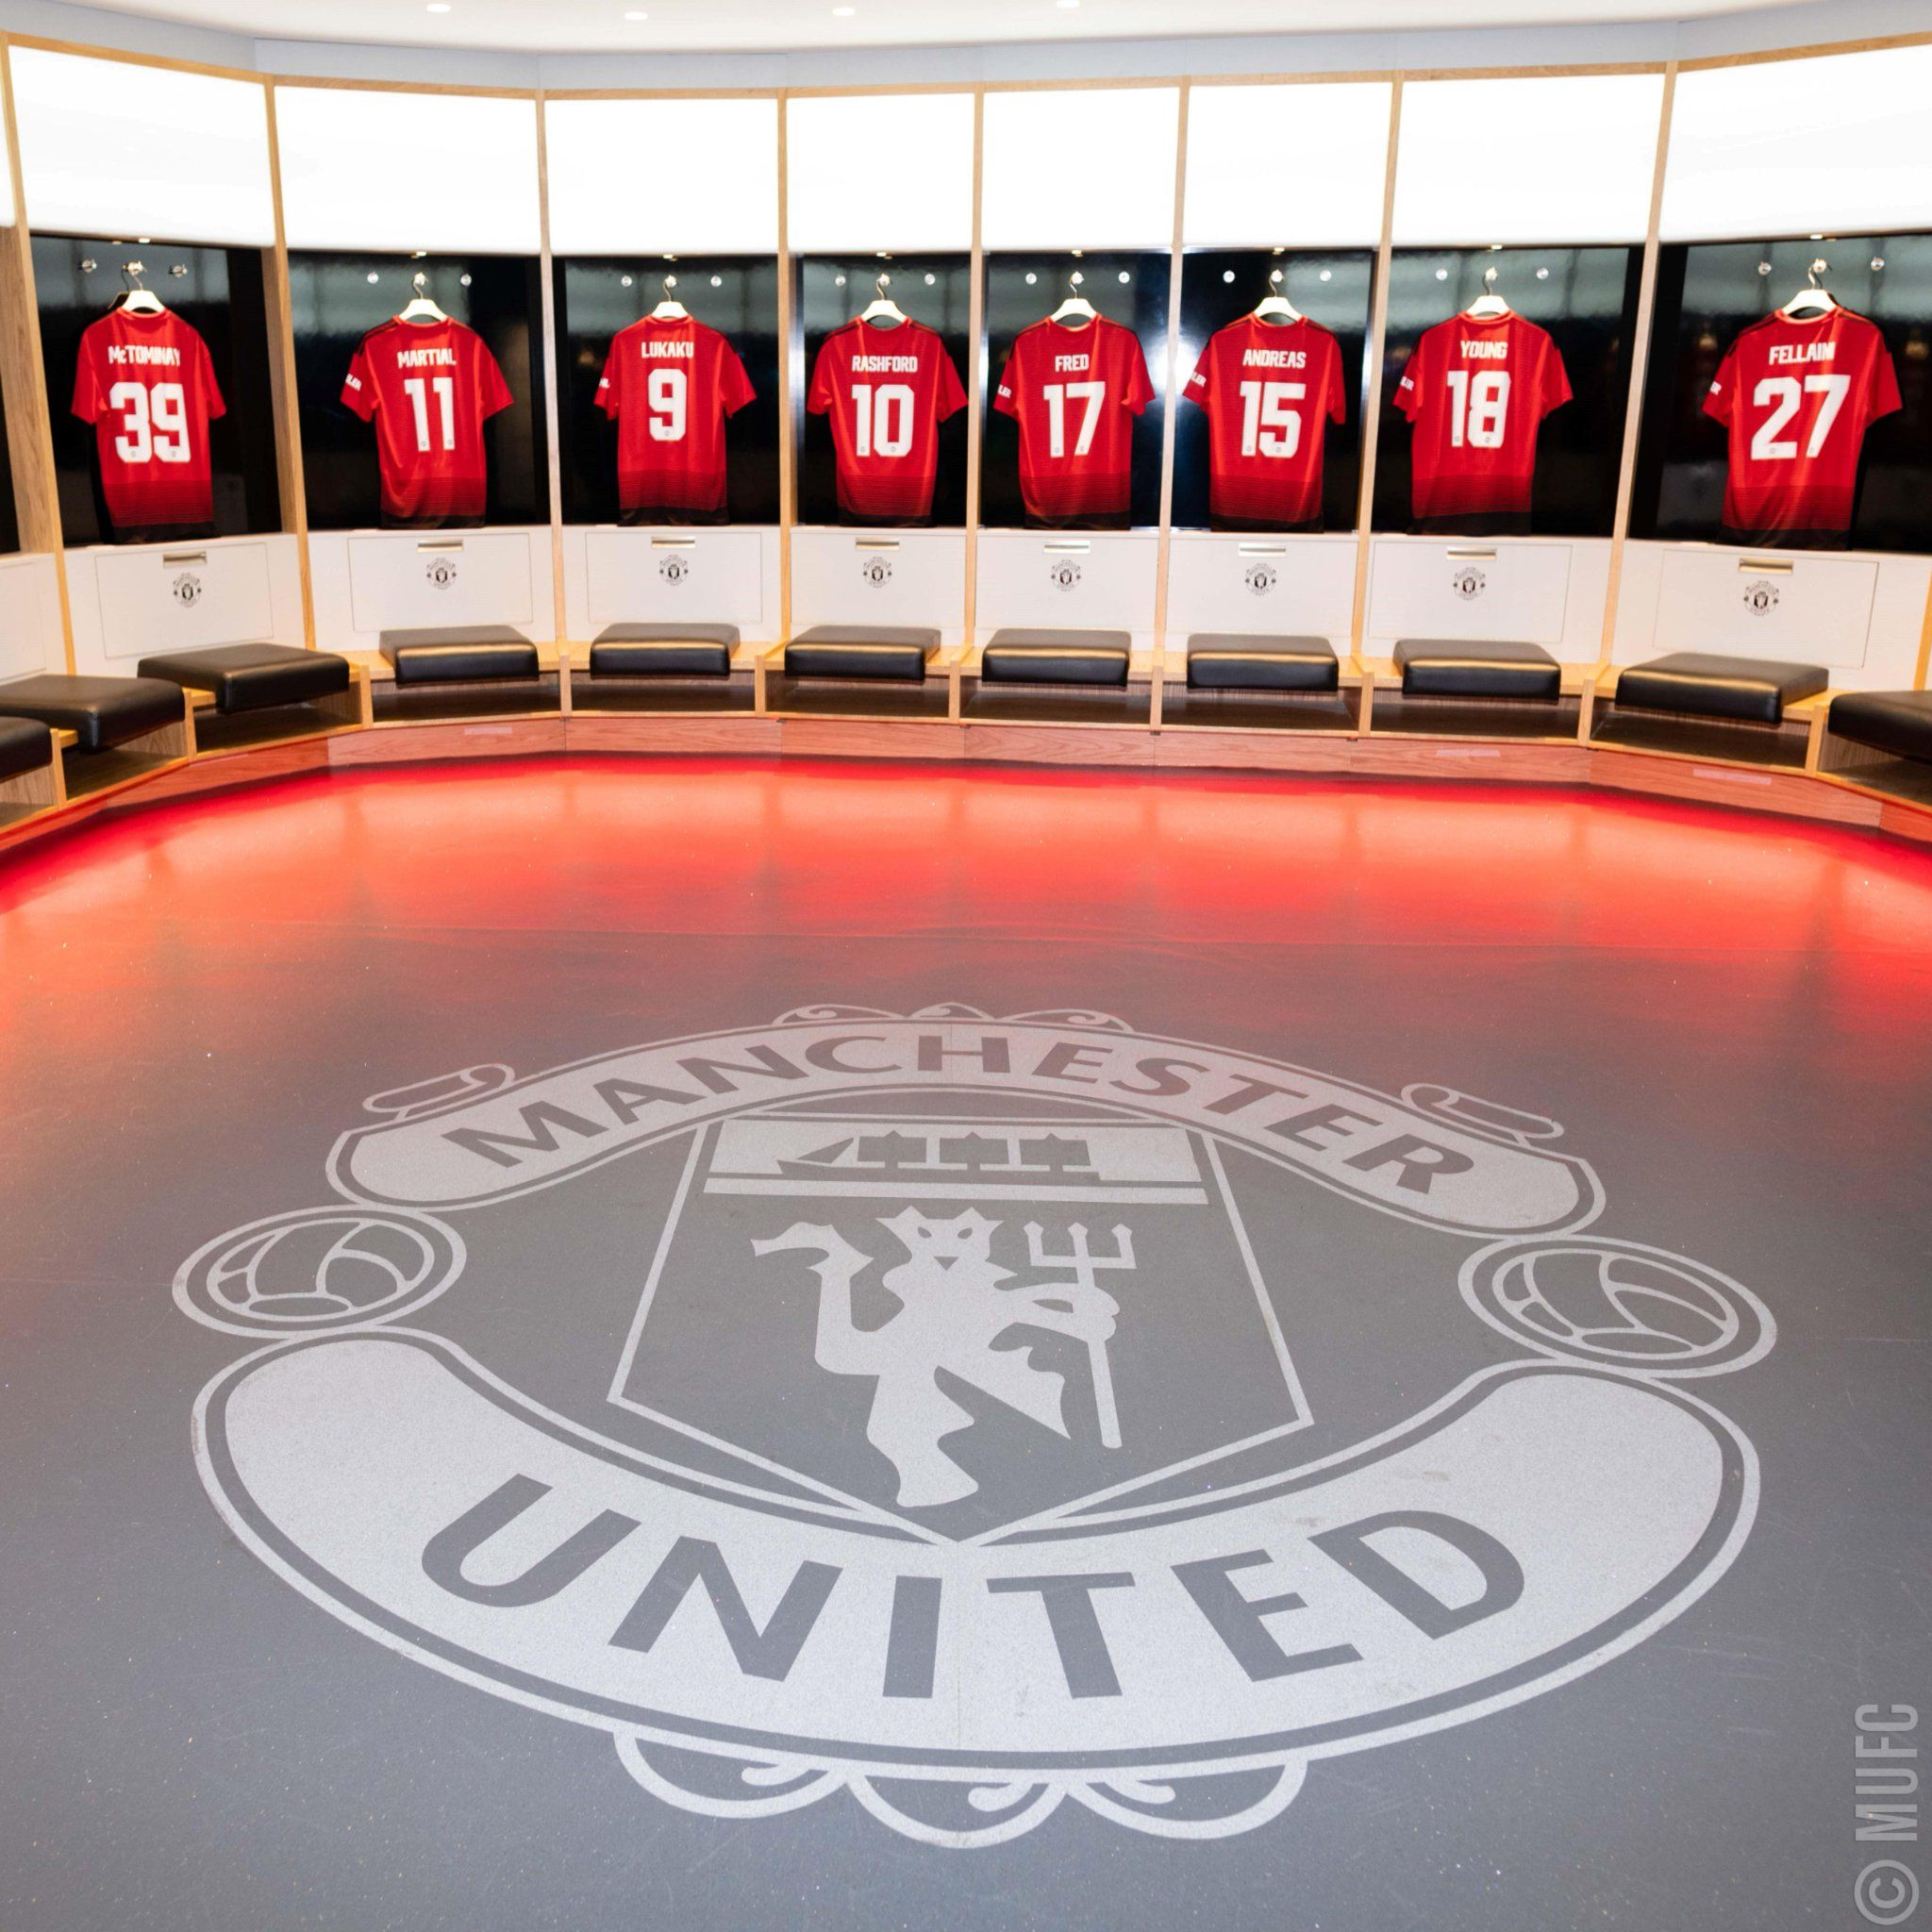 Pin By Tony Wodwaski On Manchester United Football Club Mufc Manchester United Manchester United Team Manchester United Fans